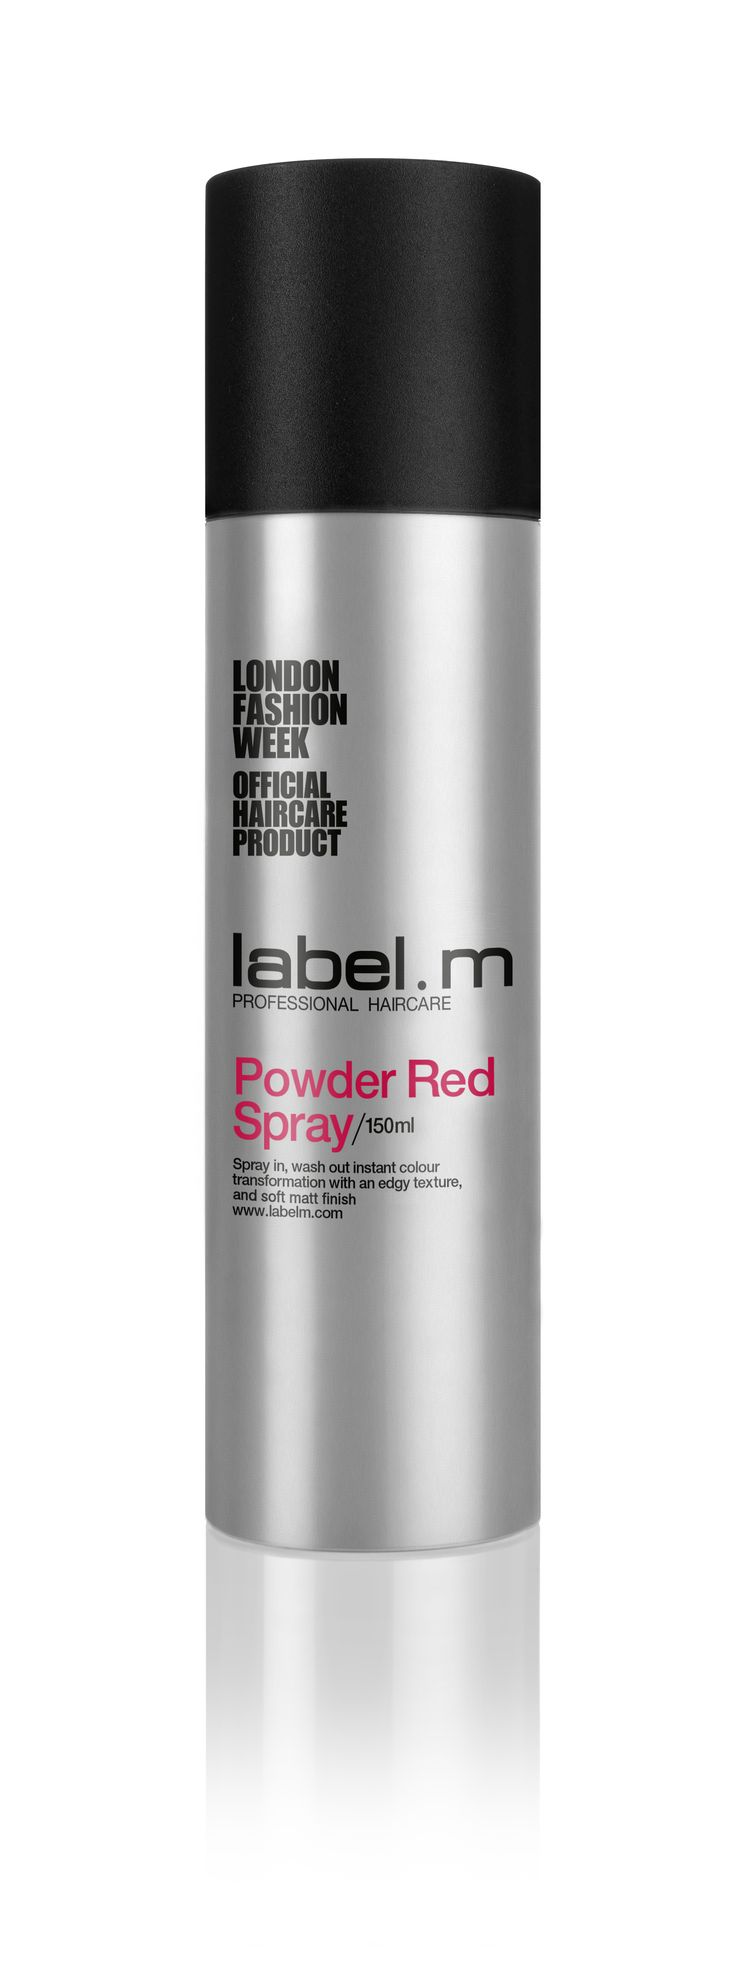 label.m Powder Red Spray. spray-in, wash-out color